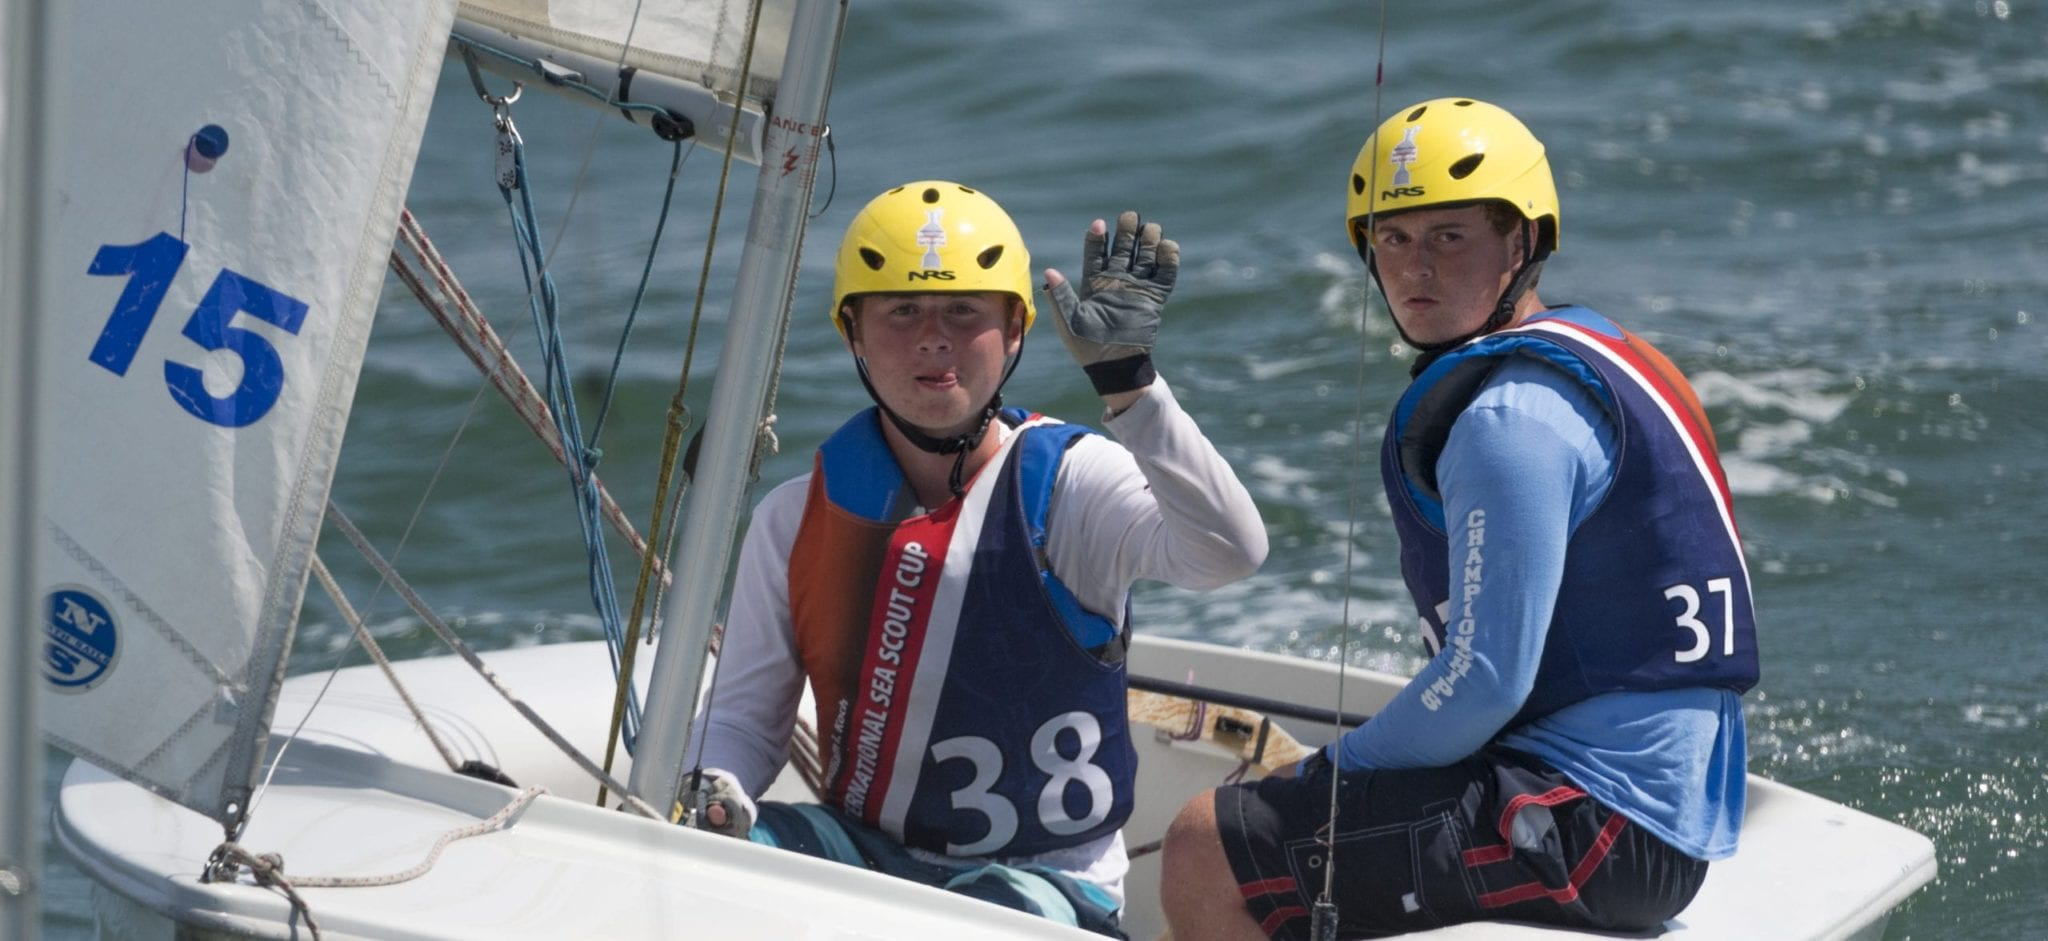 Local Sea Scouts snag second place in Kiwi Cup